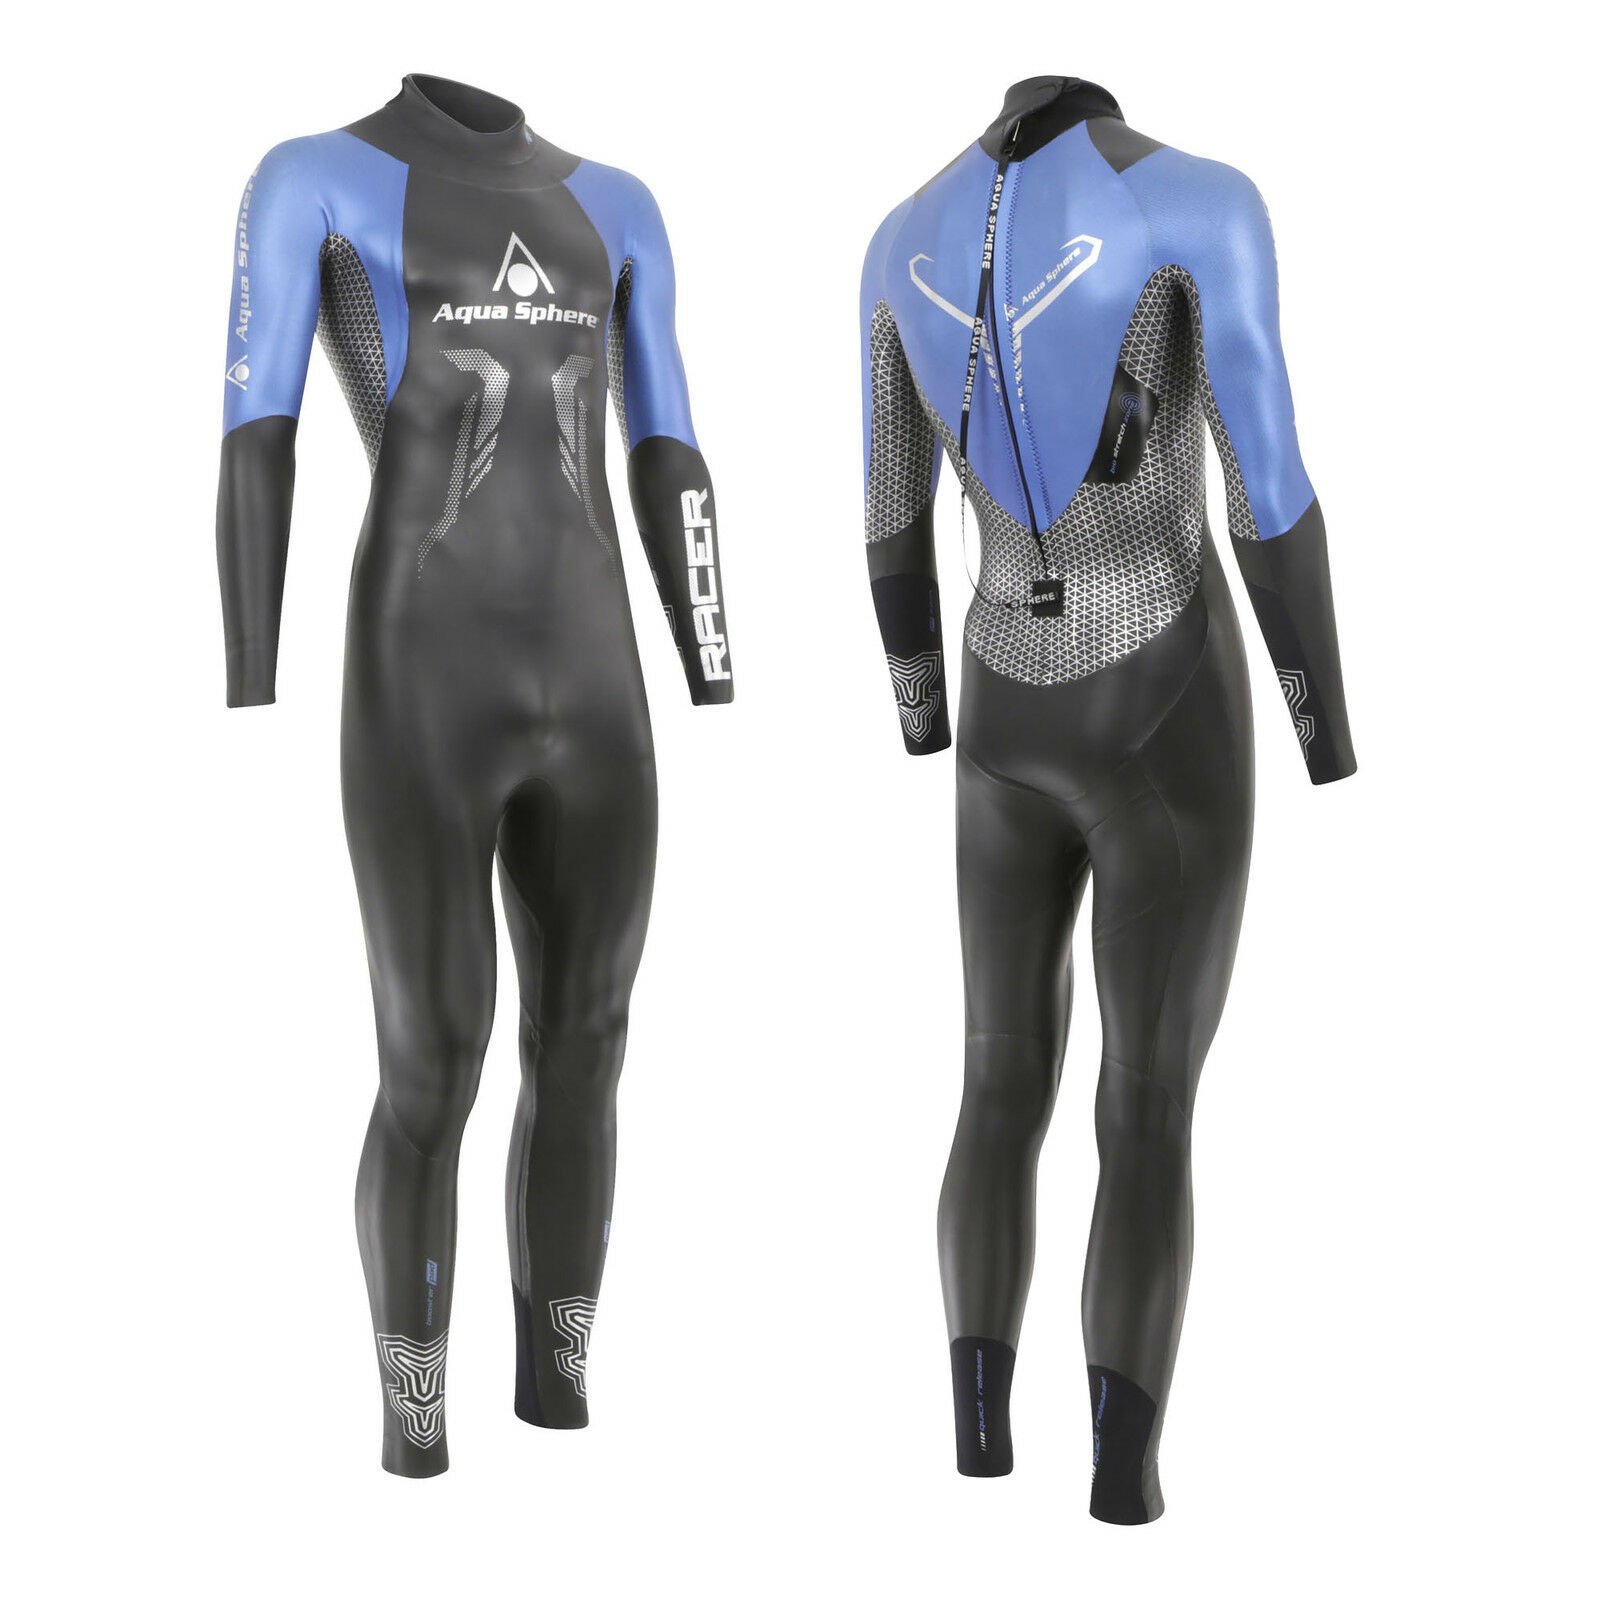 Aqua Sphere 2018 RACER Mens Triathlon Long Sleeve Wetsuit Open Water Swim